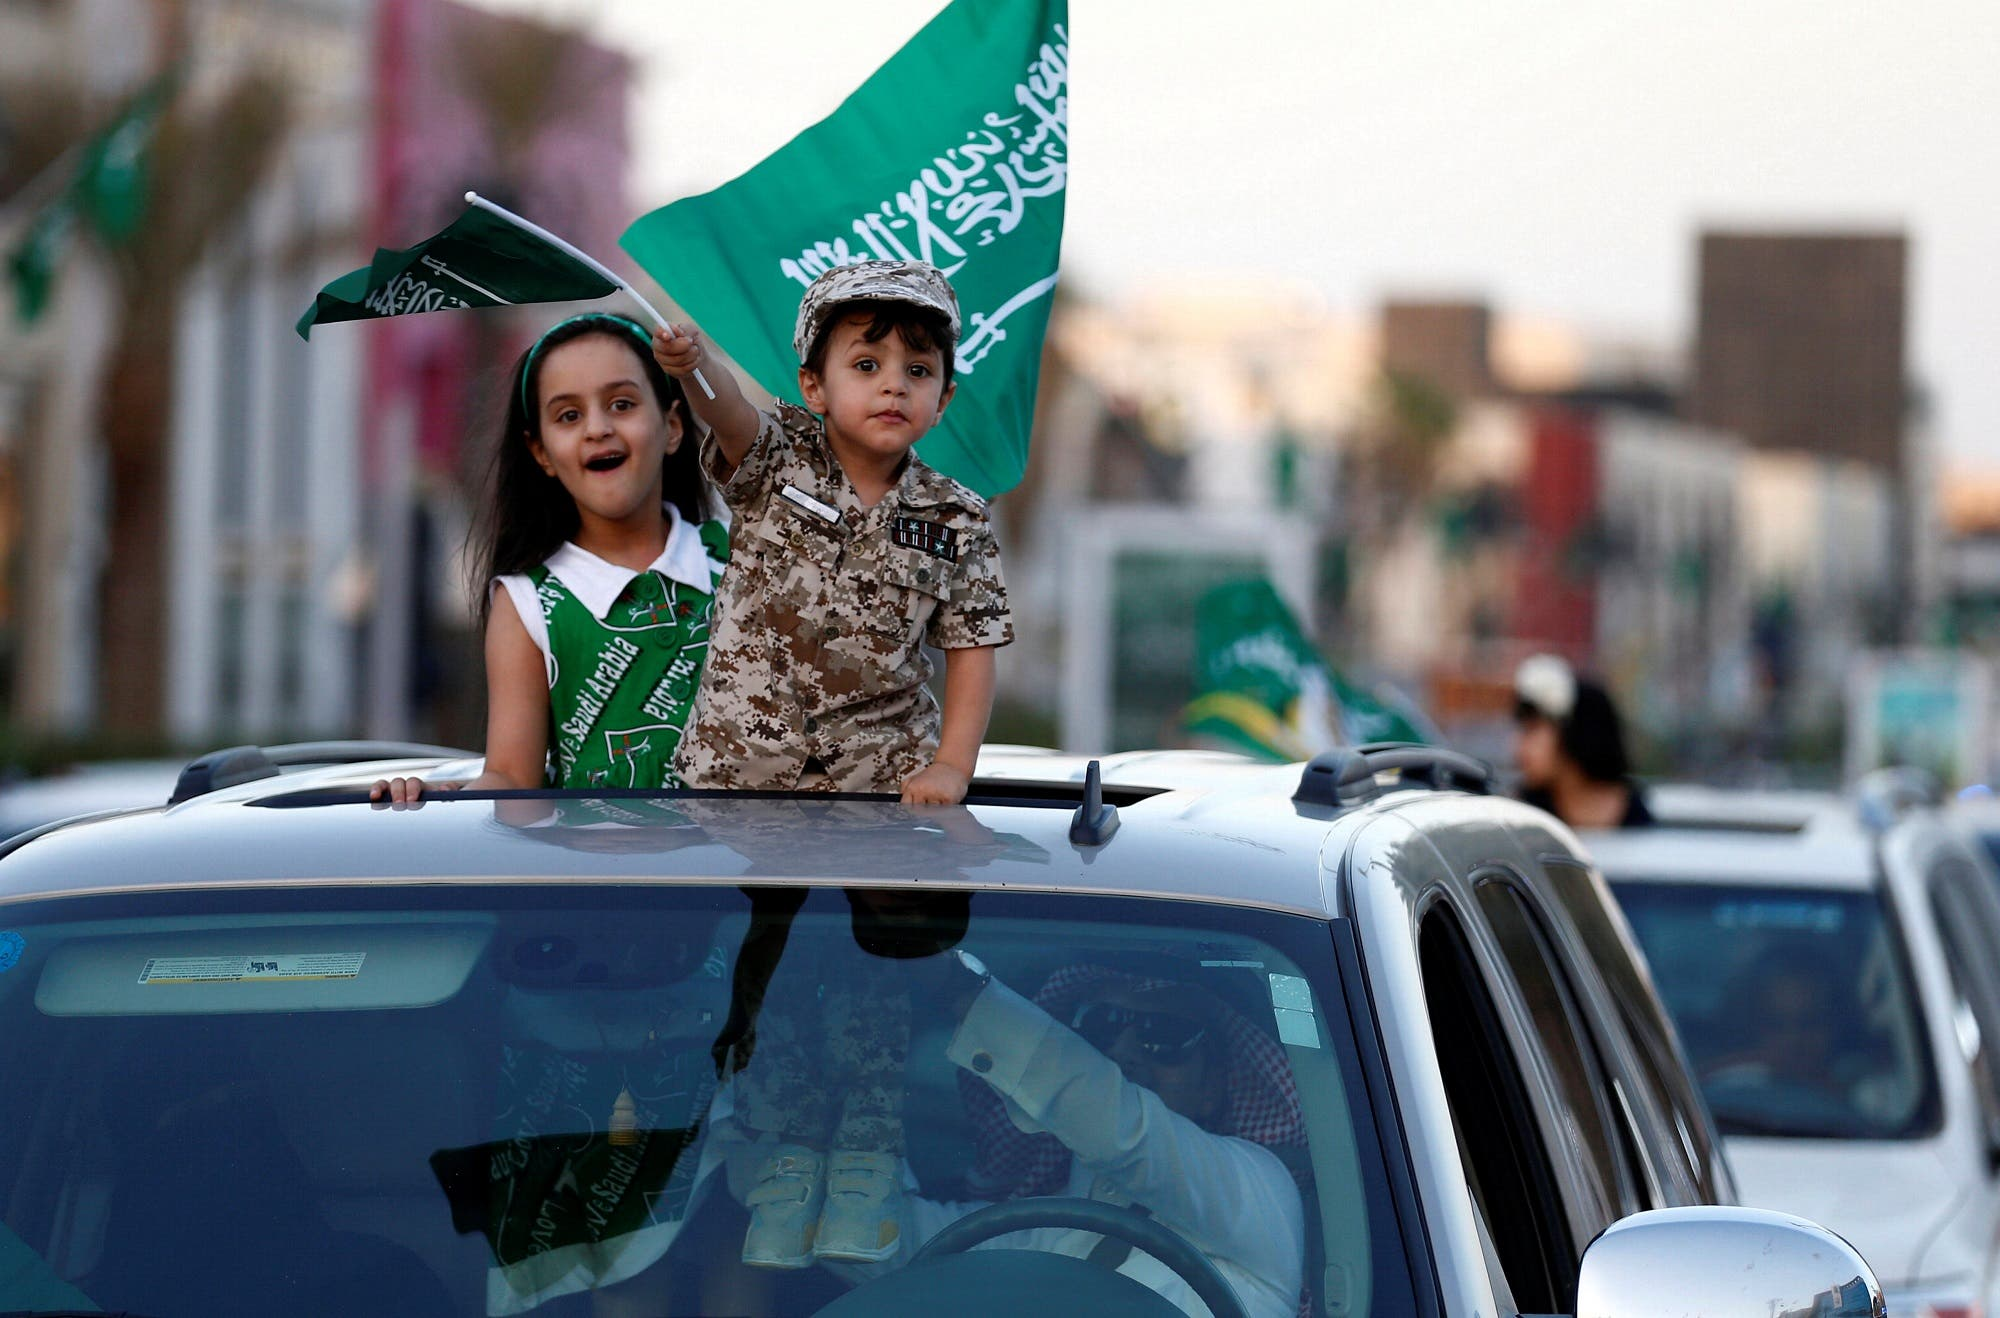 Saudi children celebrating the country's National Day on a street in Riyadh on September 23, 2016. (Reuters)